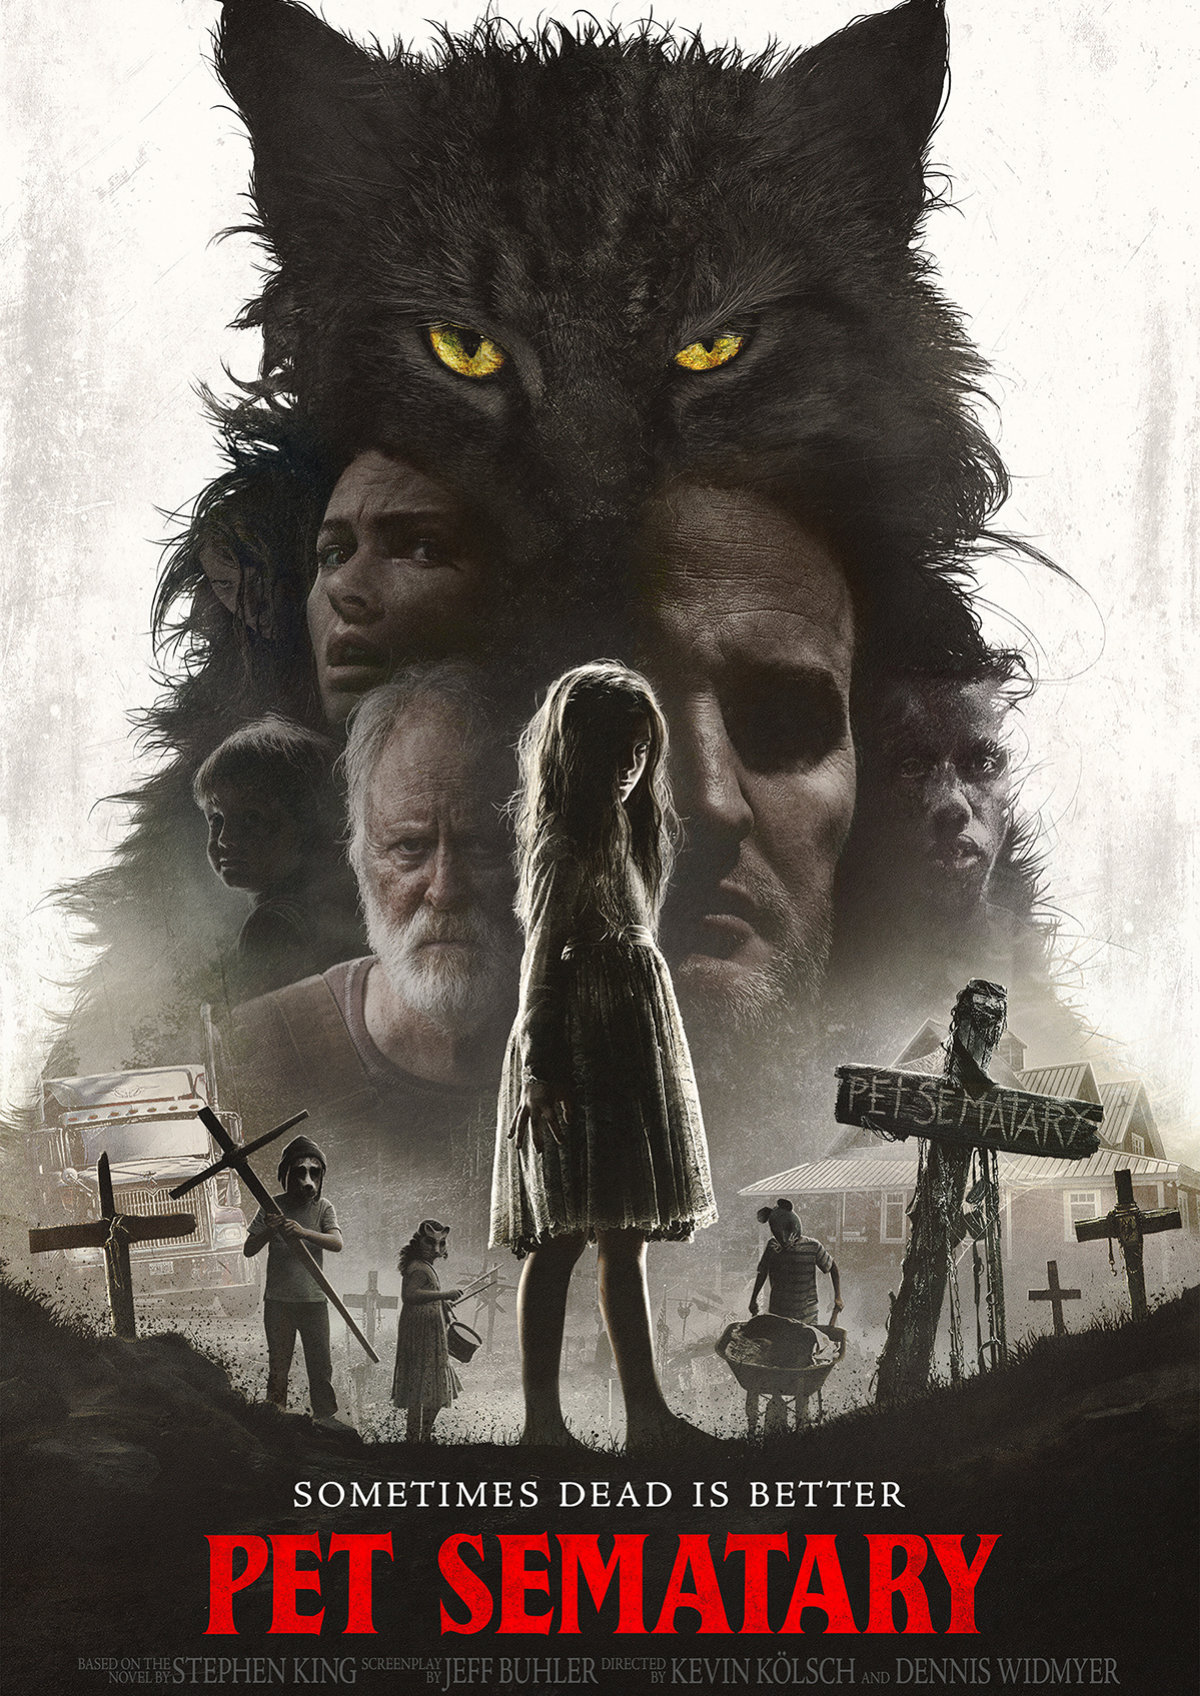 'Pet Sematary' movie poster